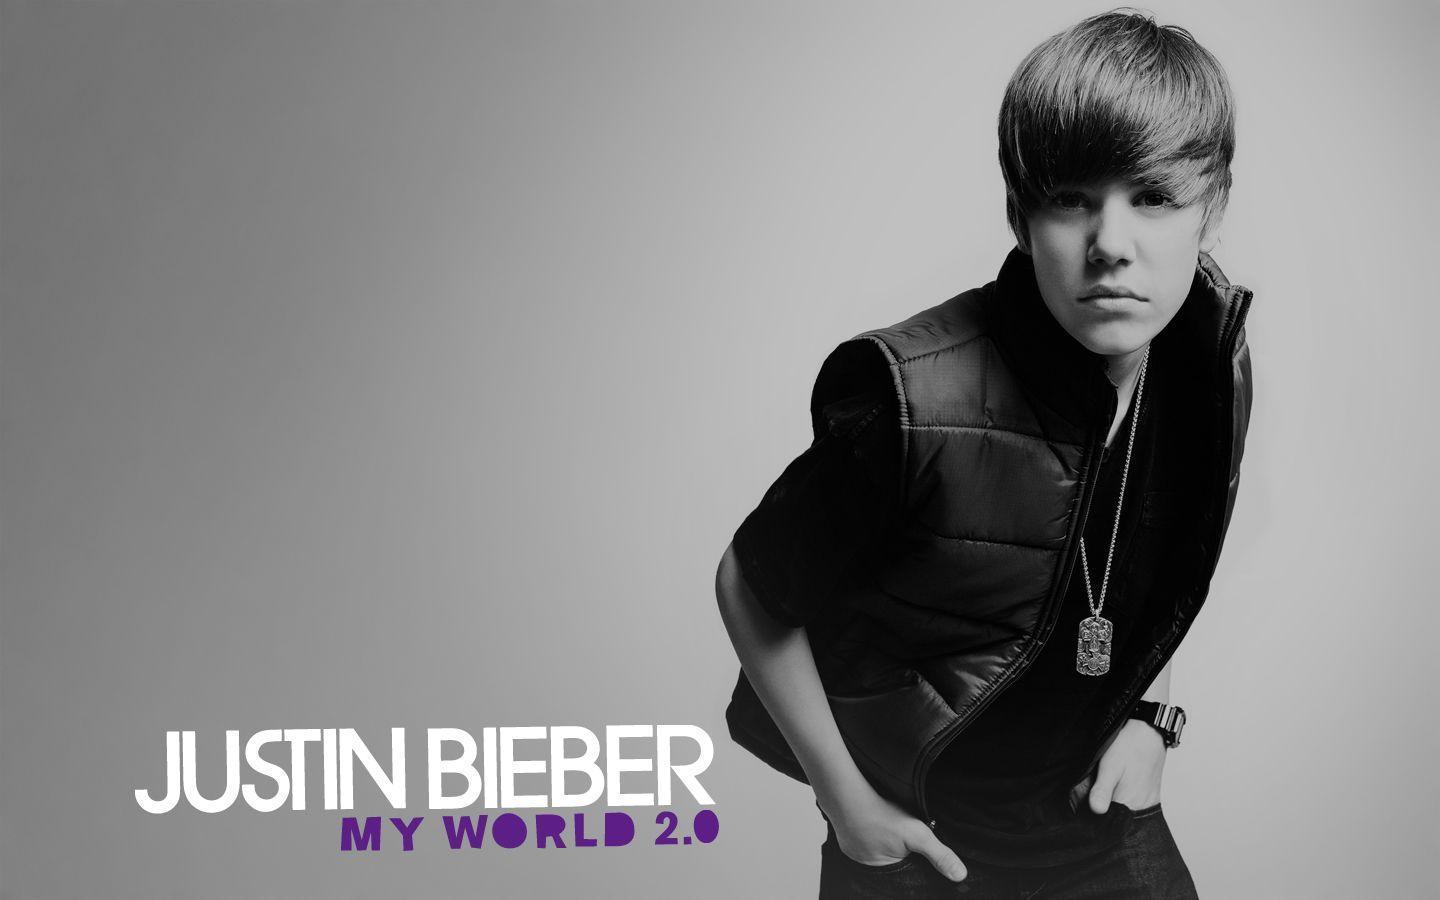 Justin Bieber Quotes Wallpapers HD Wallpapers